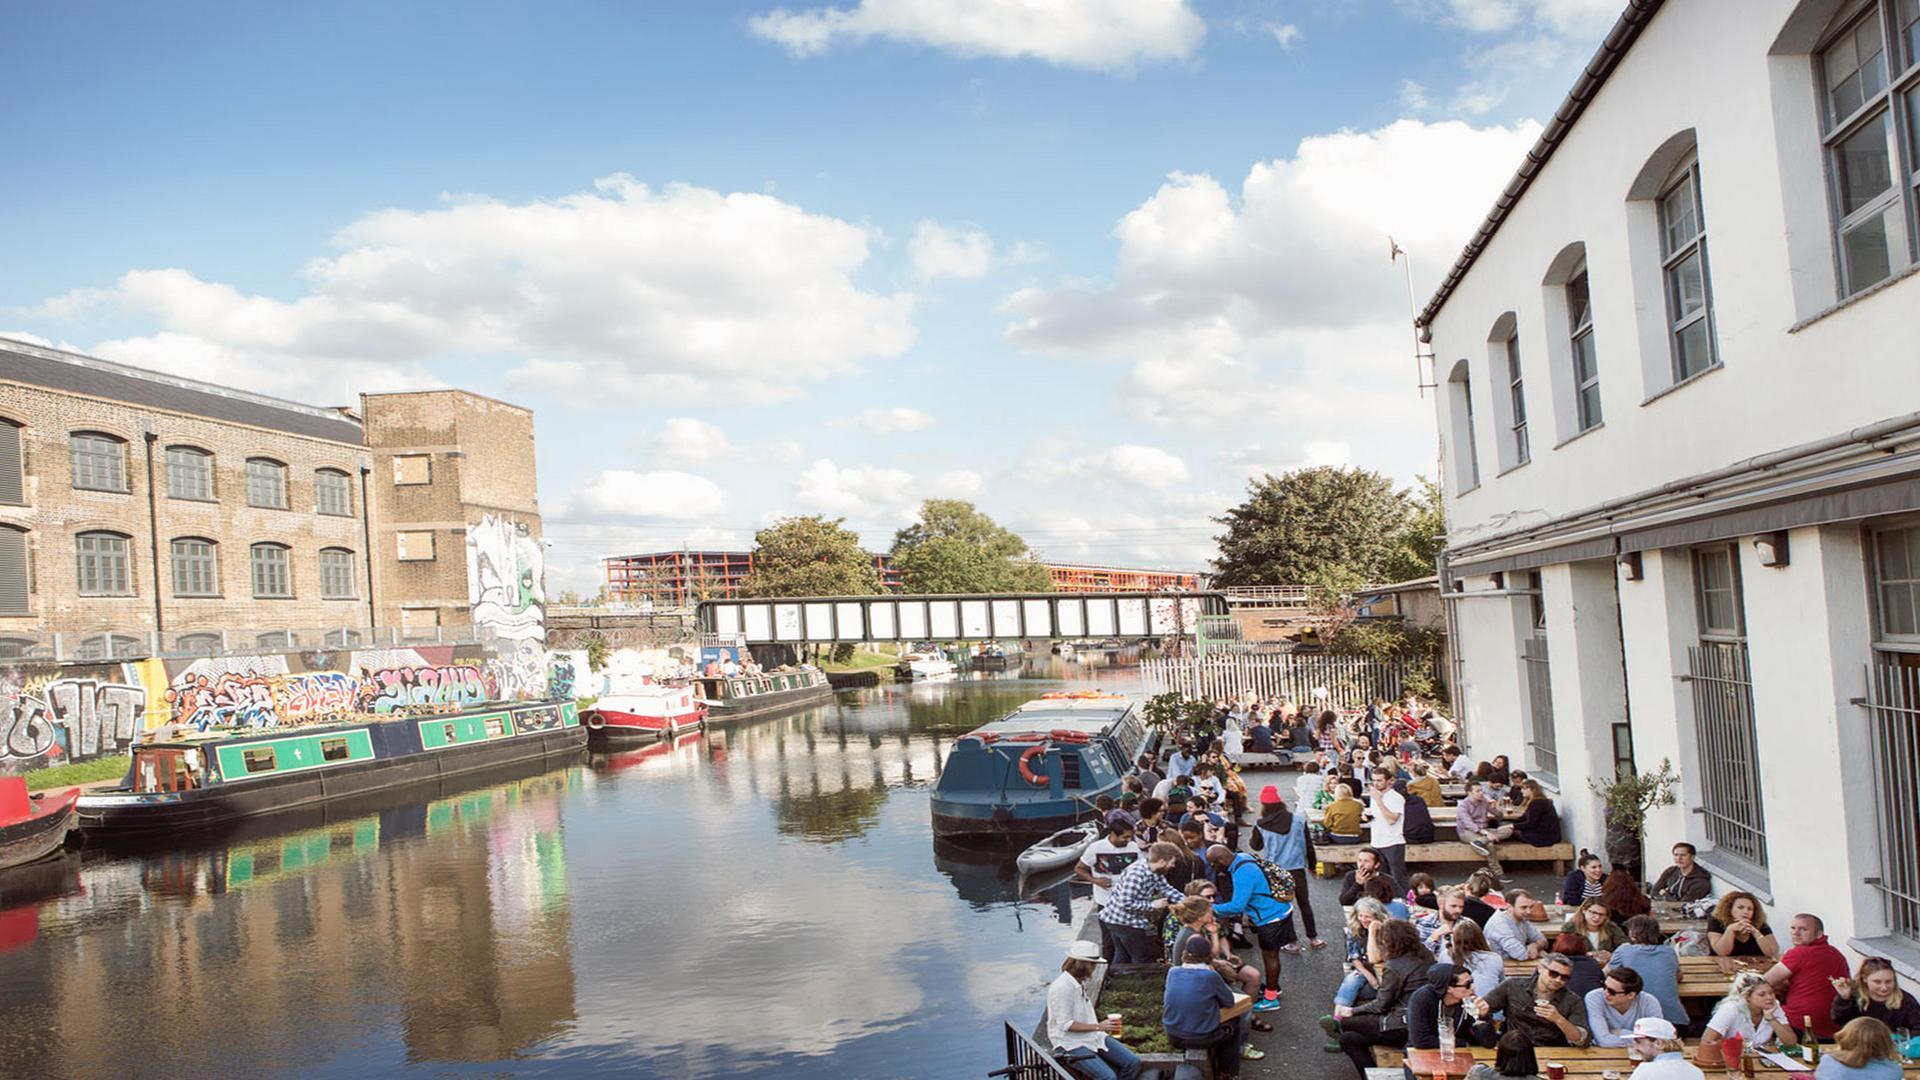 The East London Guide